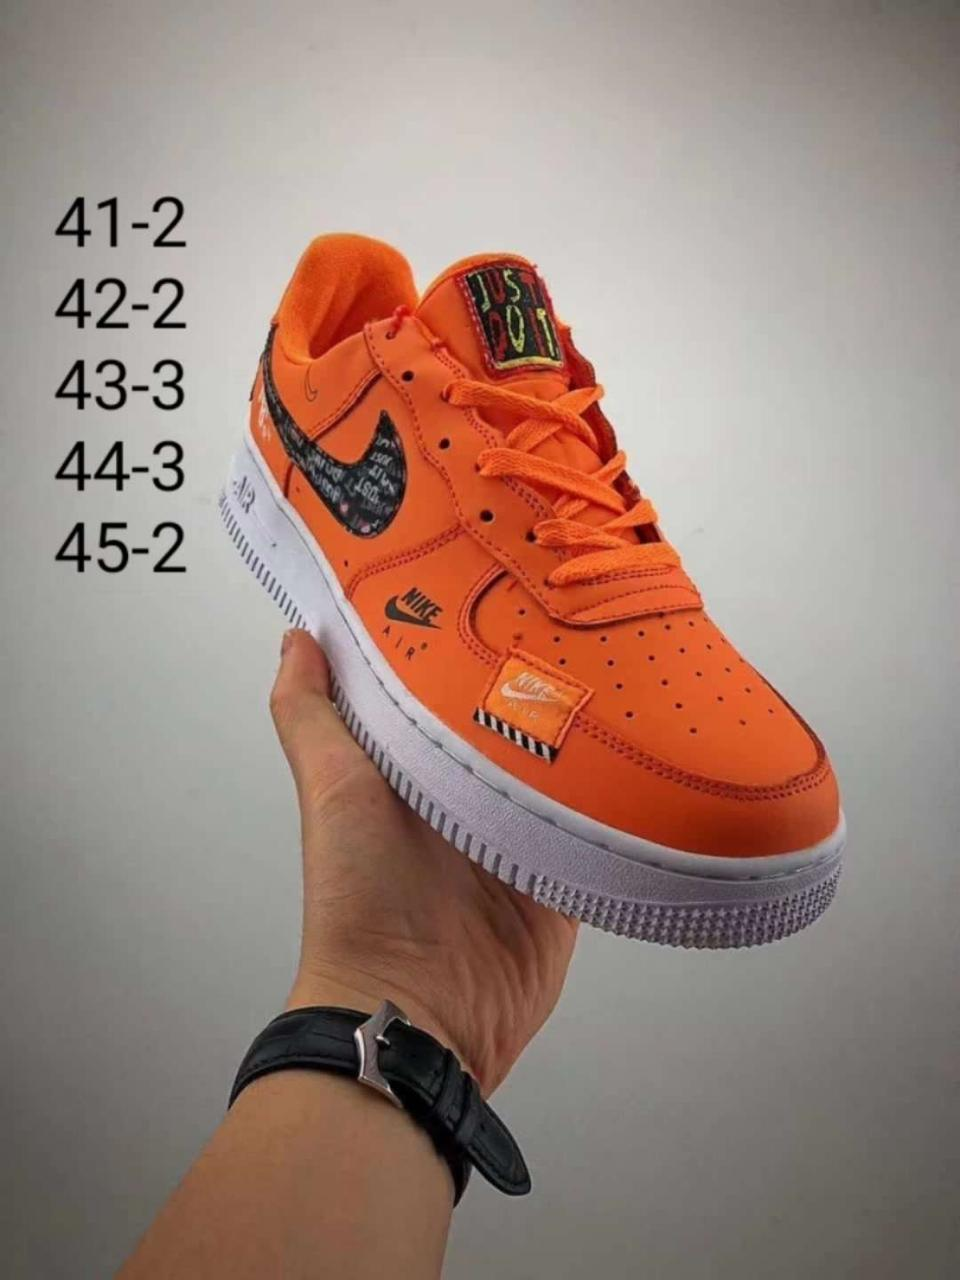 Orange nikey sneakers